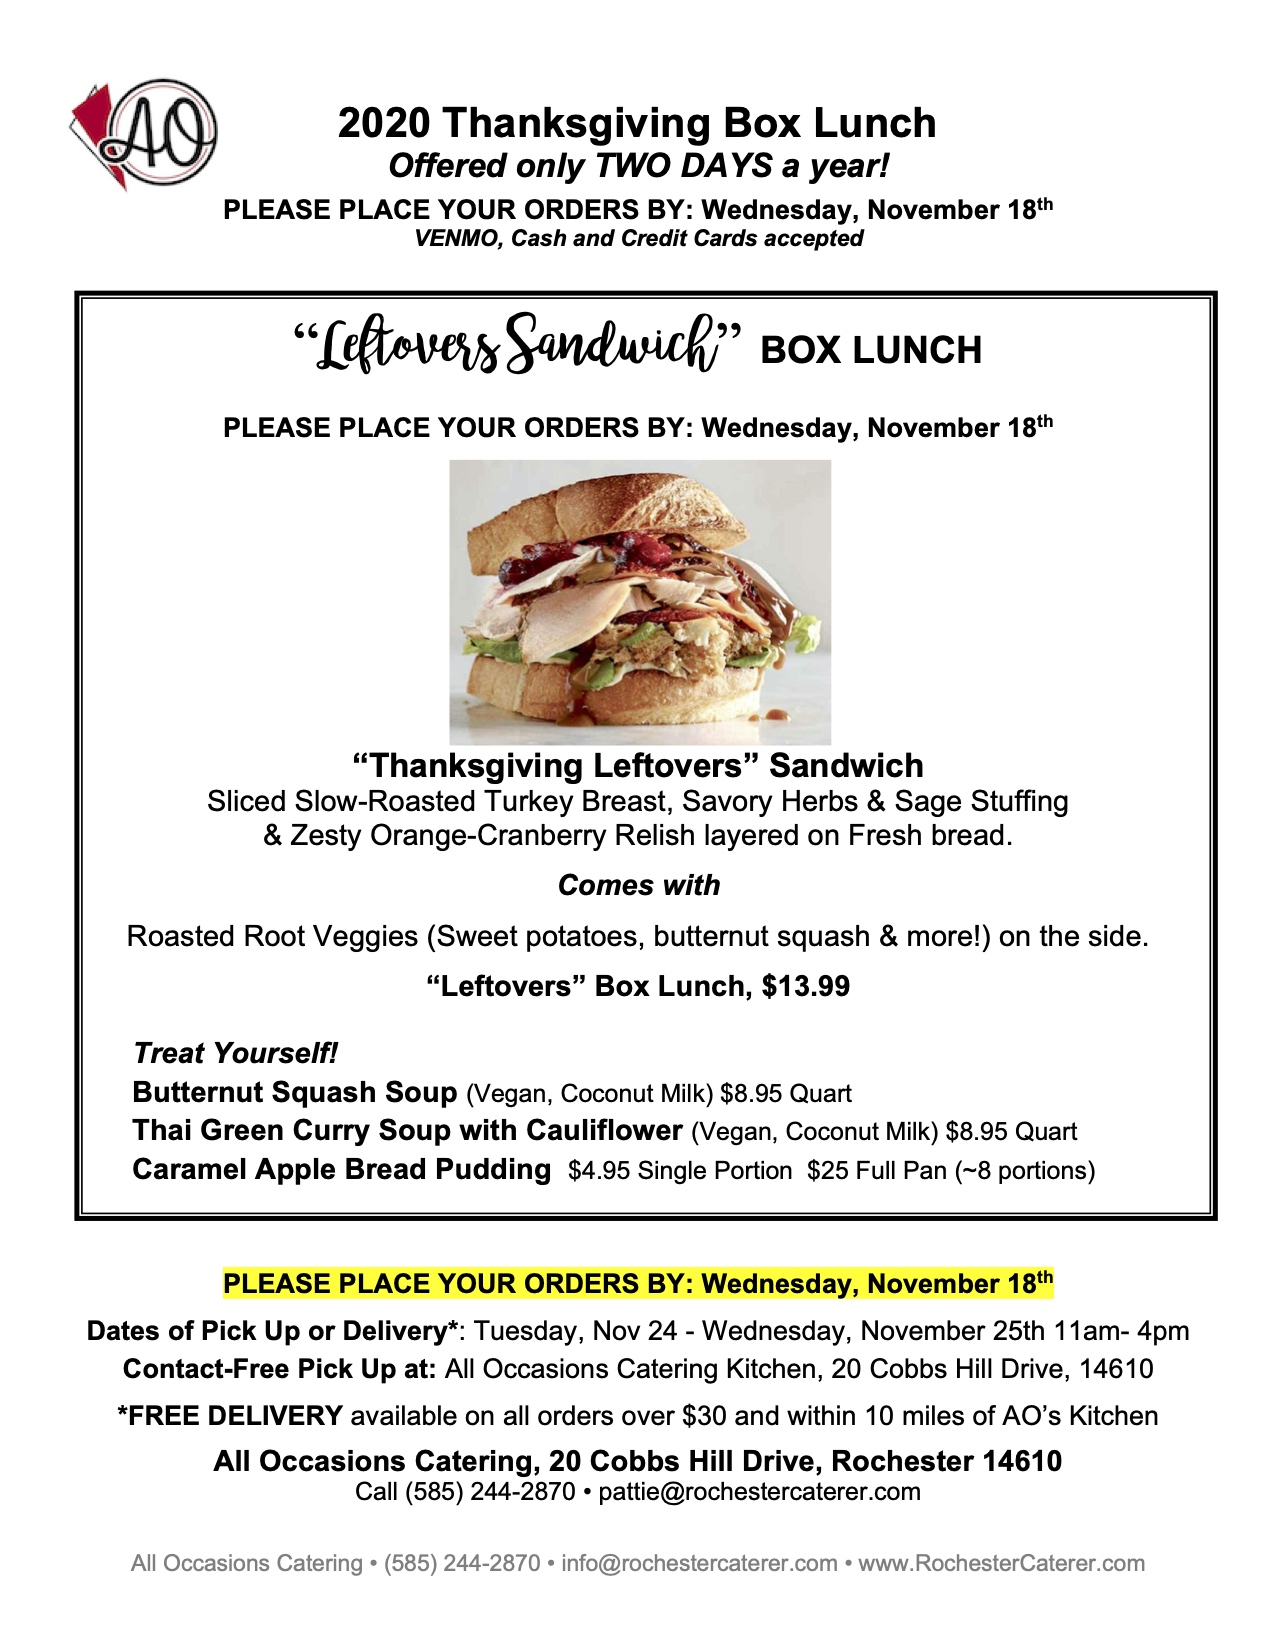 //rochestercaterer.com/wp-content/uploads/2020/10/2020-Thanksgiving-Leftovers-Box-Lunch.jpg